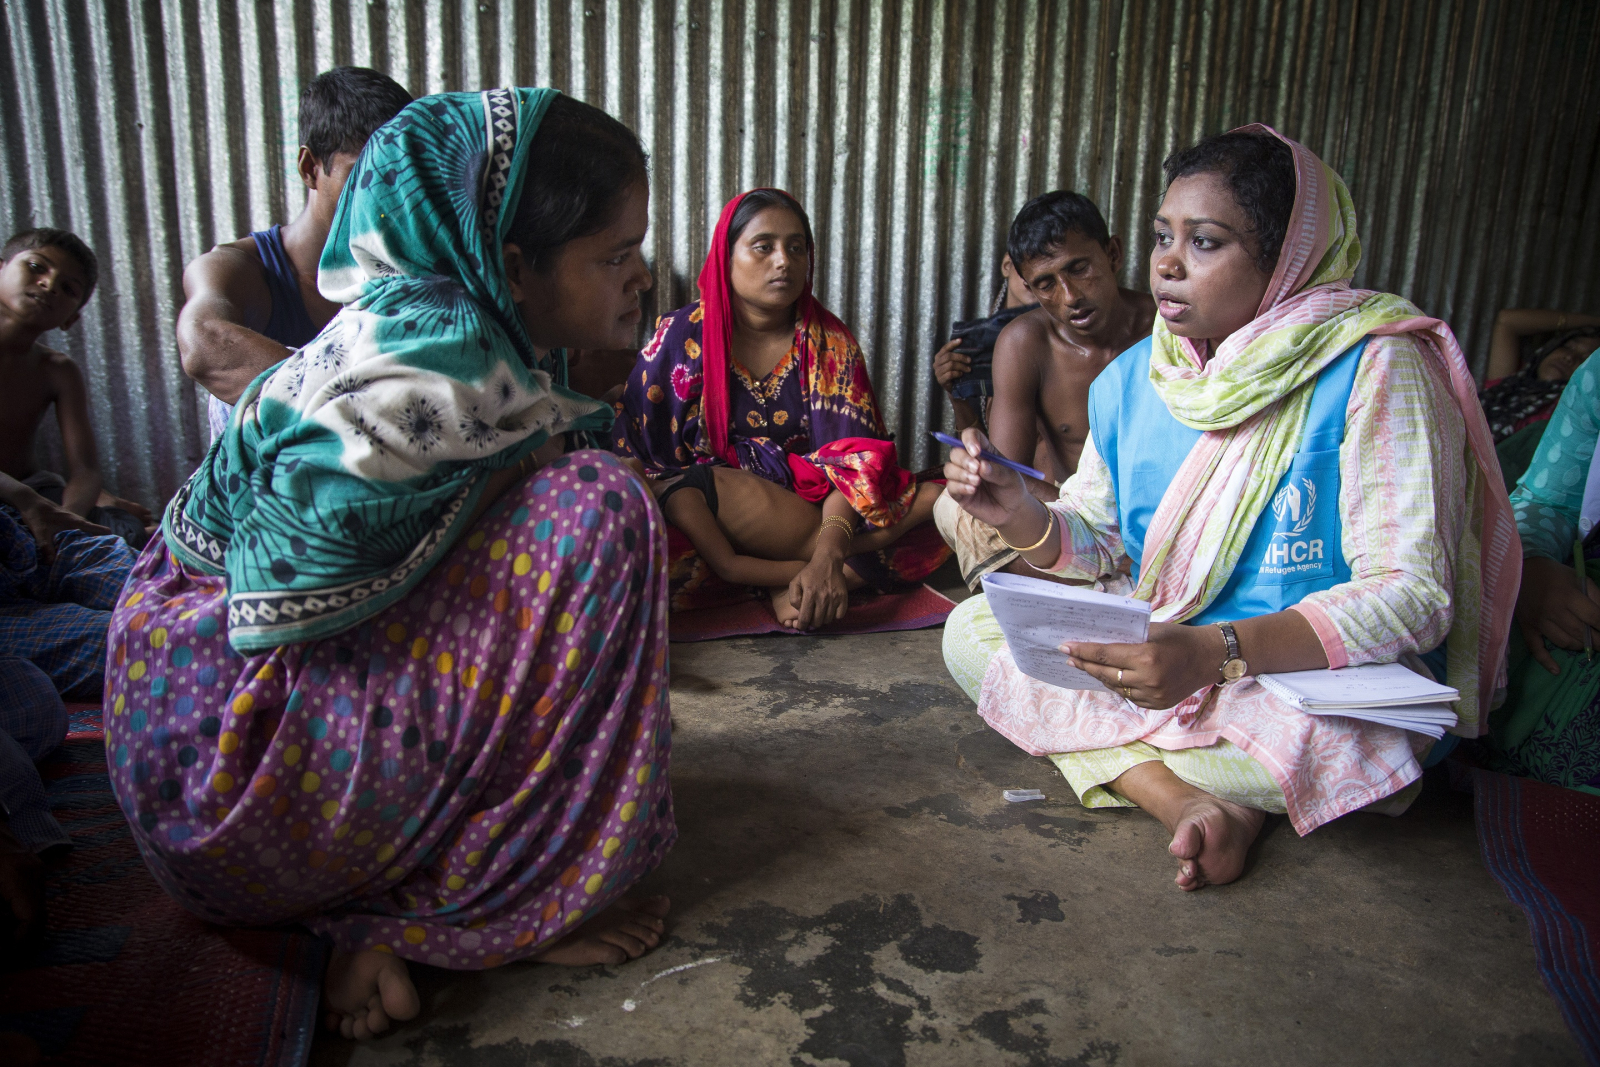 Rashida Begum, 23, a Rohingya shipwreck survivor who lost relatives when her boat capsized on Inani Beach near Cox's Bazar, receives counselling from UNHCR psychologist Mahmuda at Kutupalong refugee camp in Bangladesh. Photographer Roger Arnold